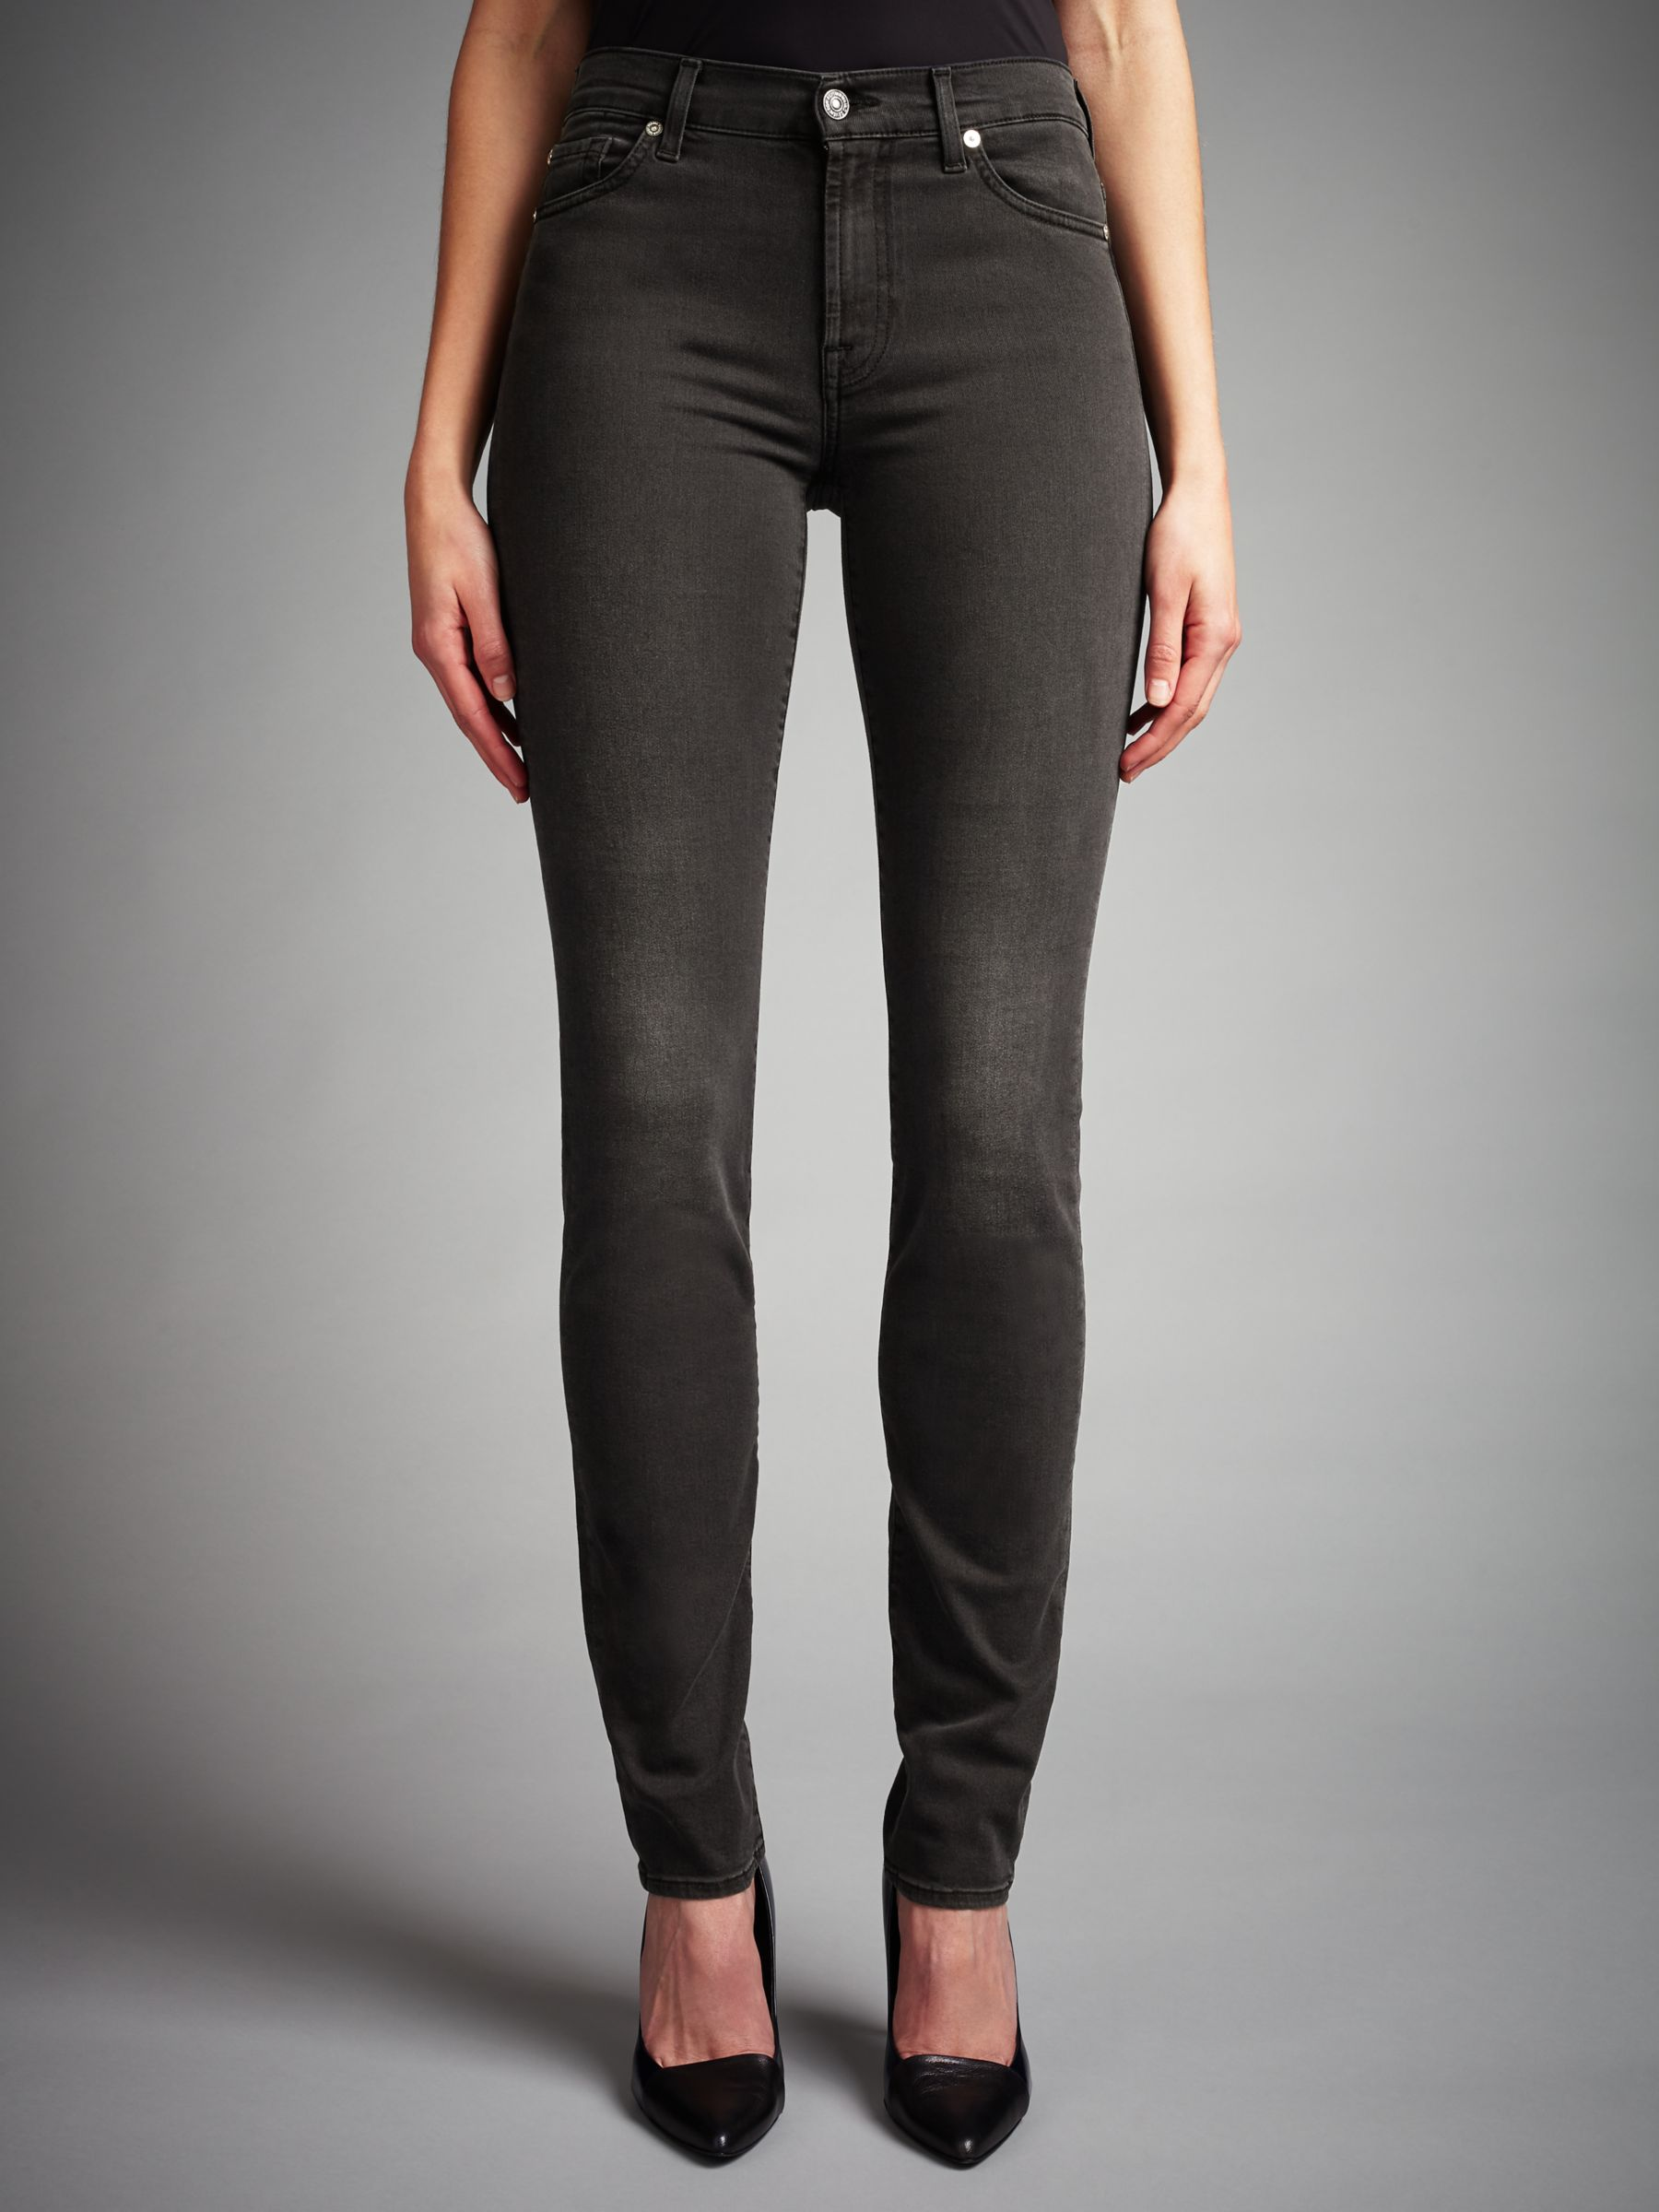 7 For All Mankind 7 For All Mankind Rozie Slim Jeans, Portland Black